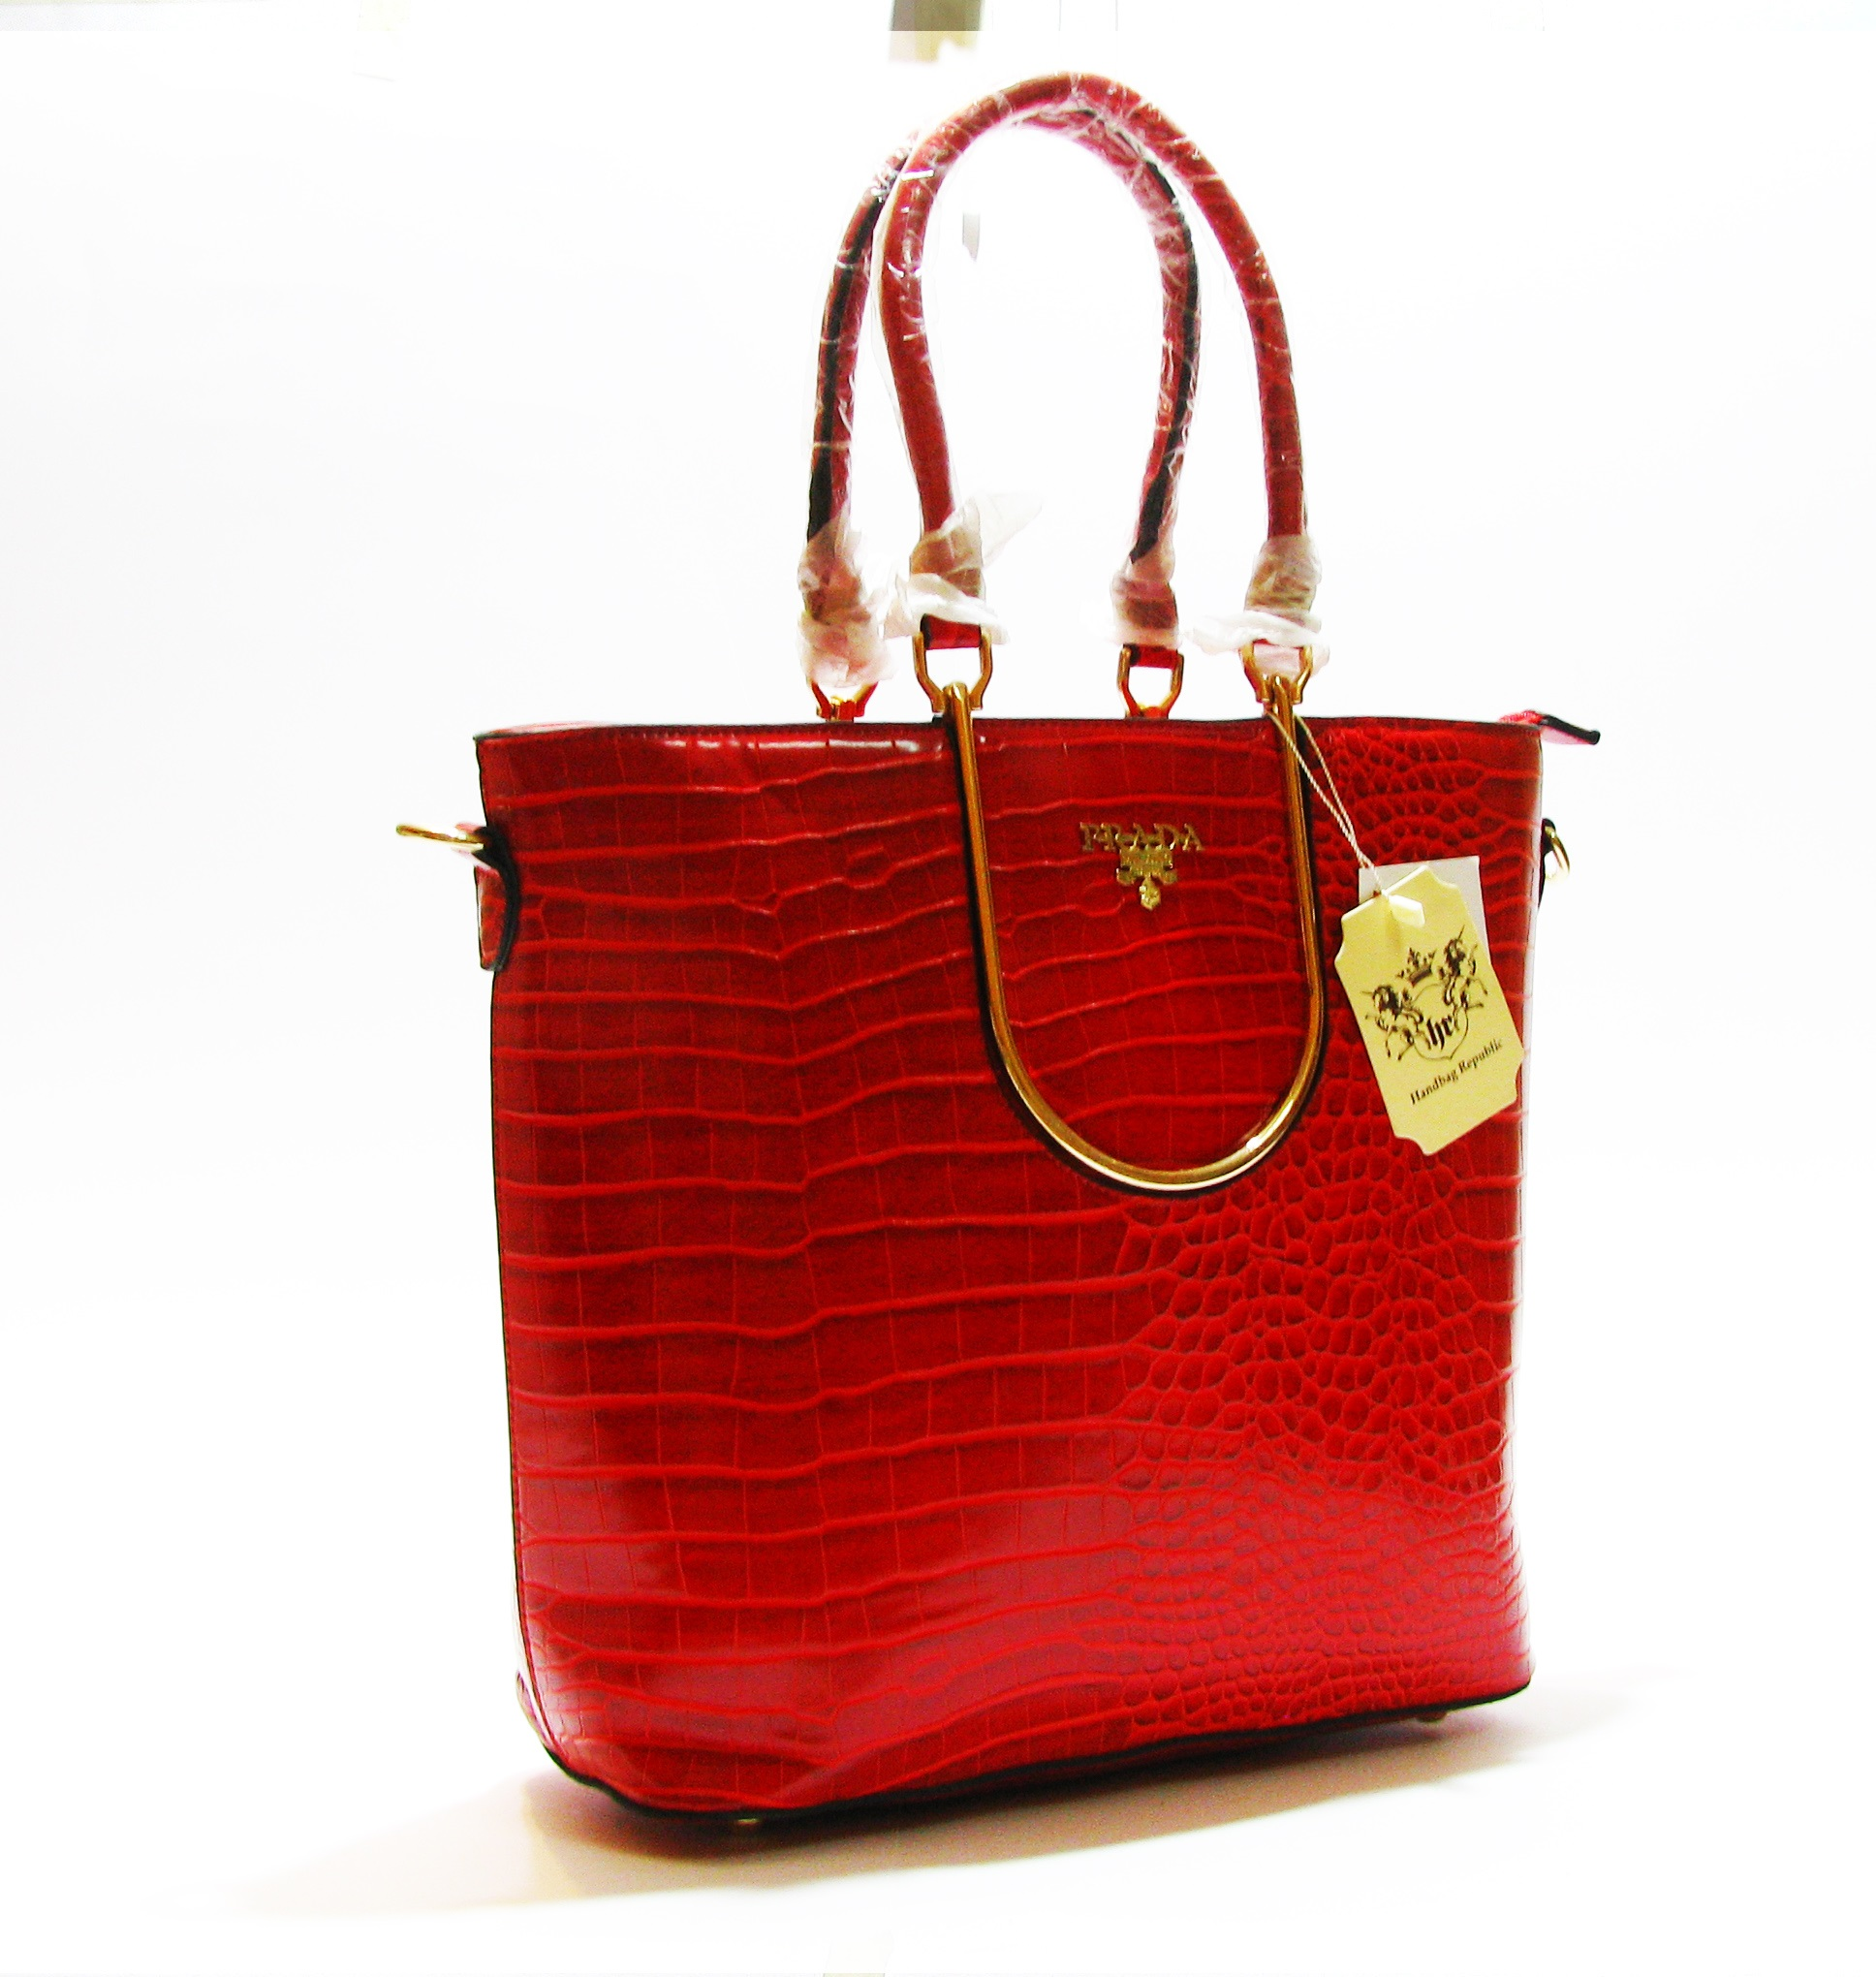 028158da4e82 Prada Red Alligator Leather Tote - Over Stock Pakistan